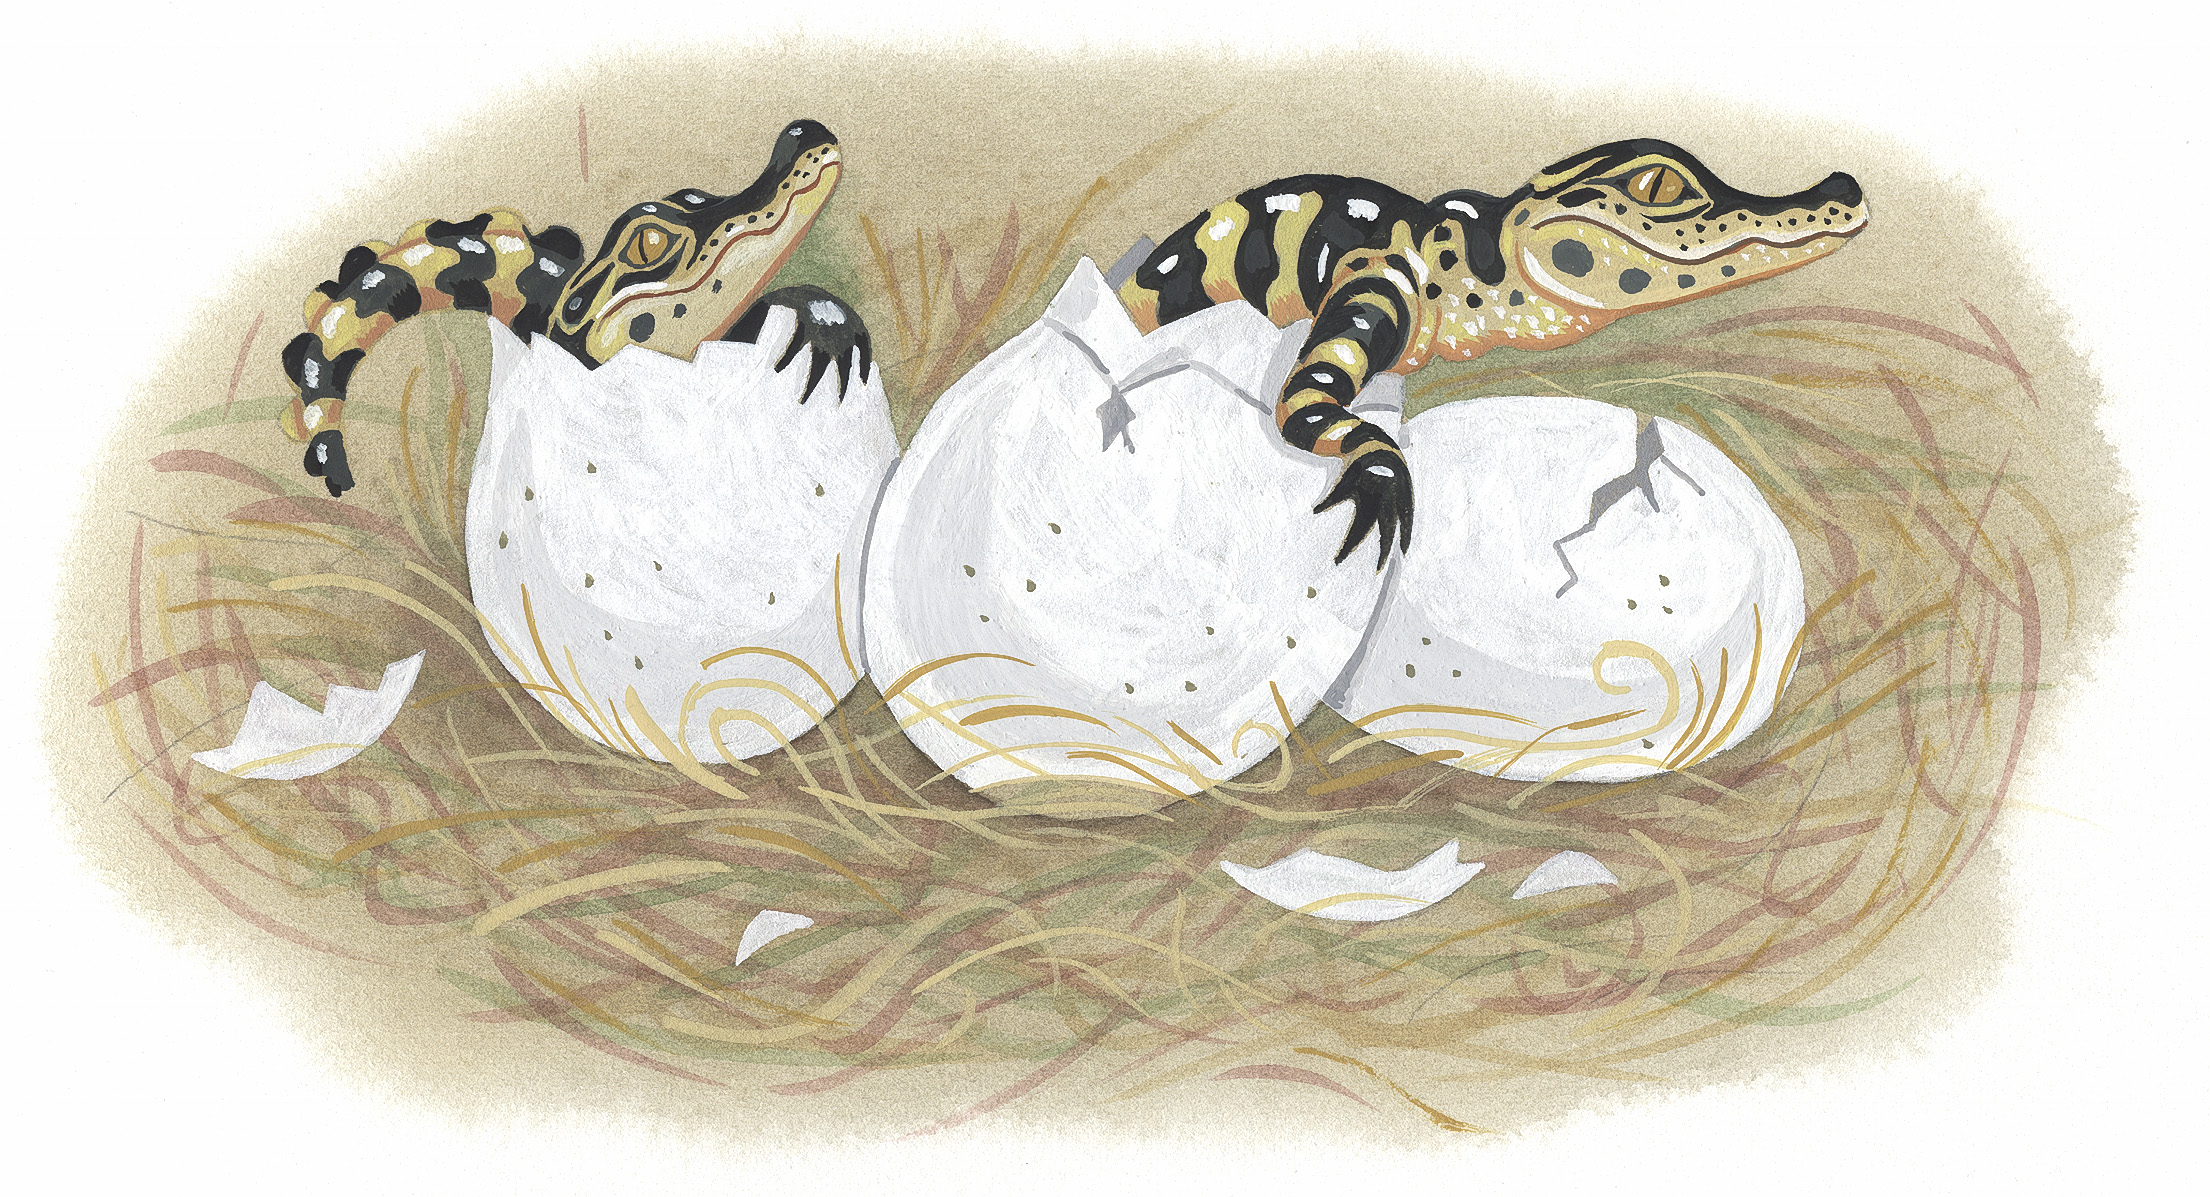 Baby Gators Hatching